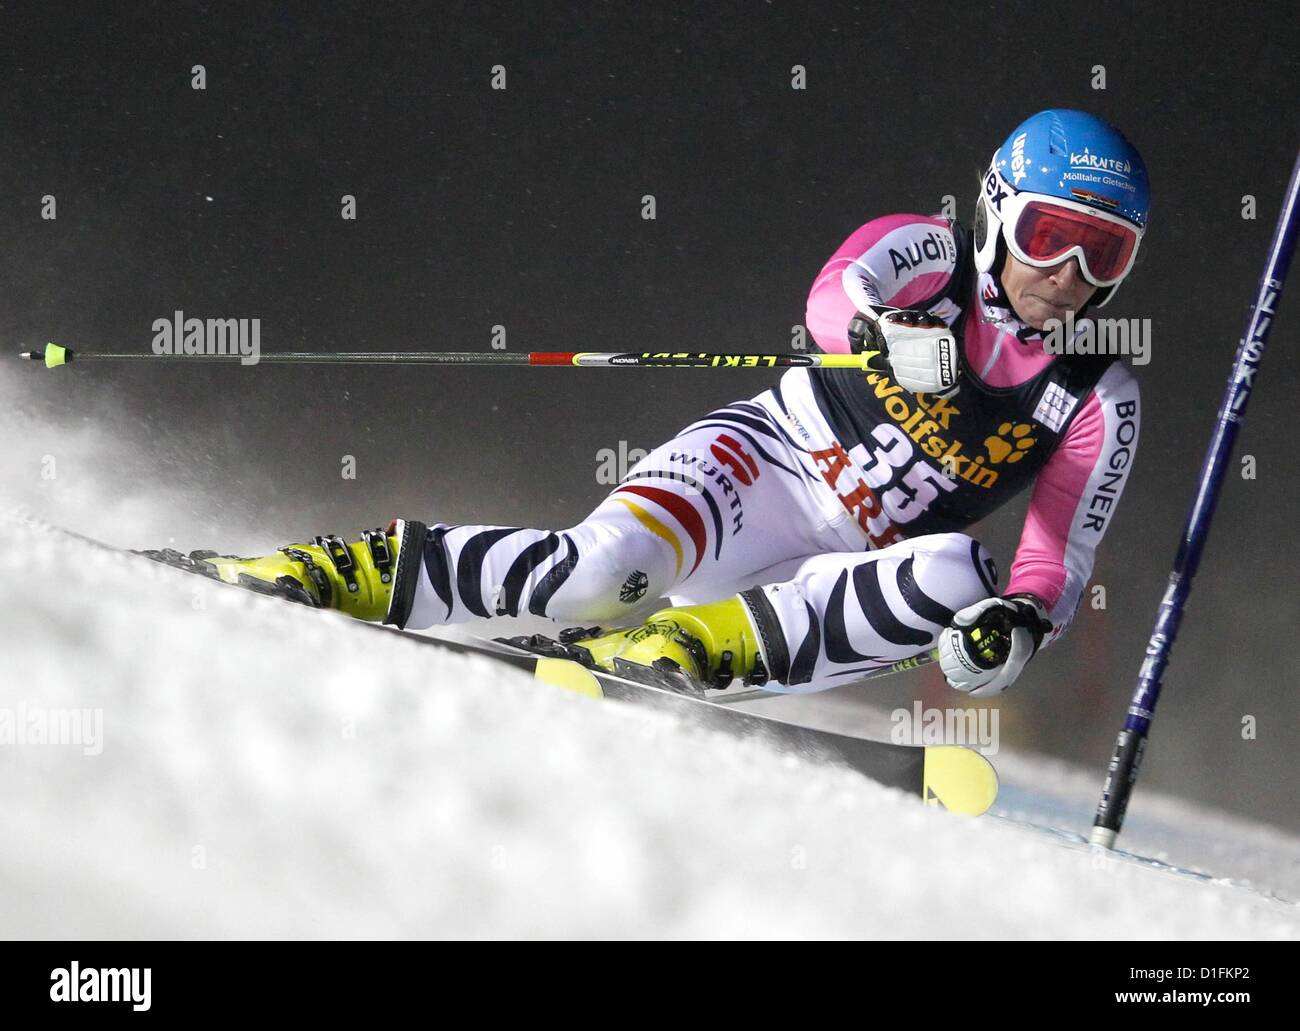 19.12.2012. Aare, Sweden.  FIS World Cup Giant slalom for women Picture shows Veronique  ger  World Cup 2013 - Stock Image